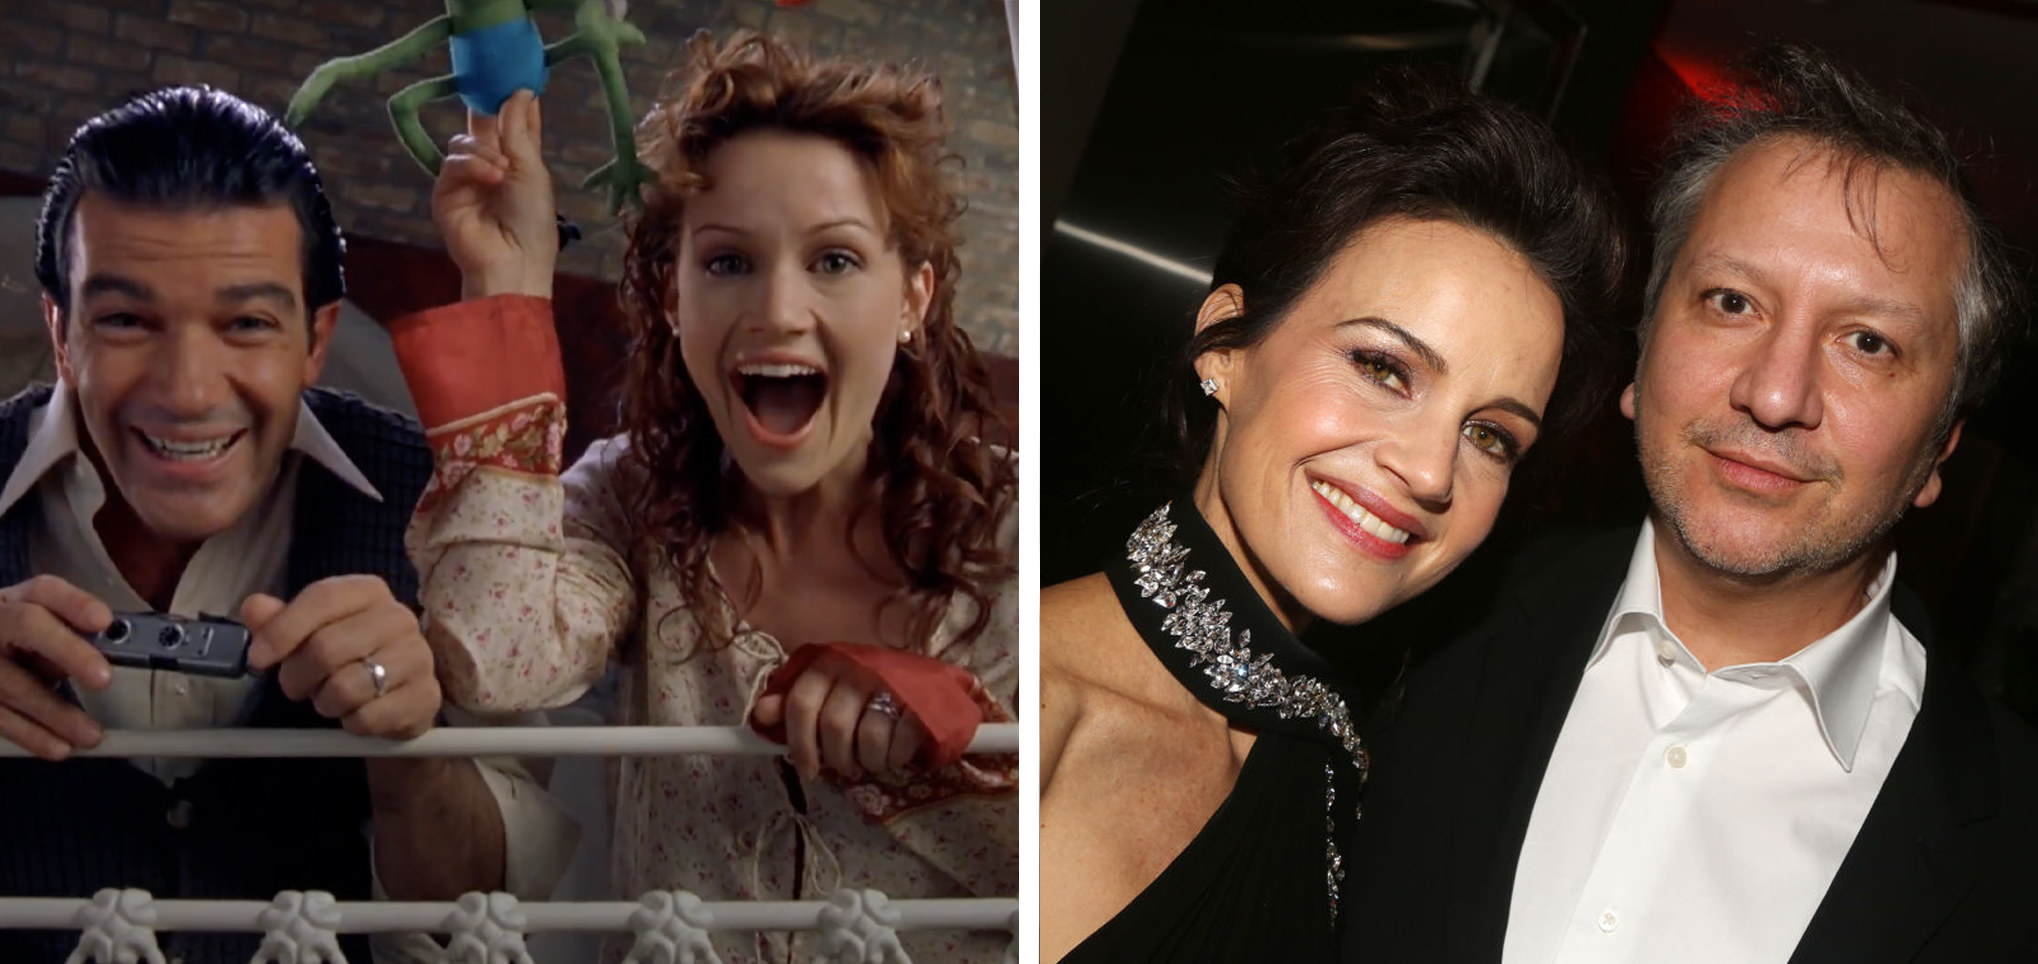 On the left, Carla is in character playing with her baby. On the right, she is with her partner at a gala.